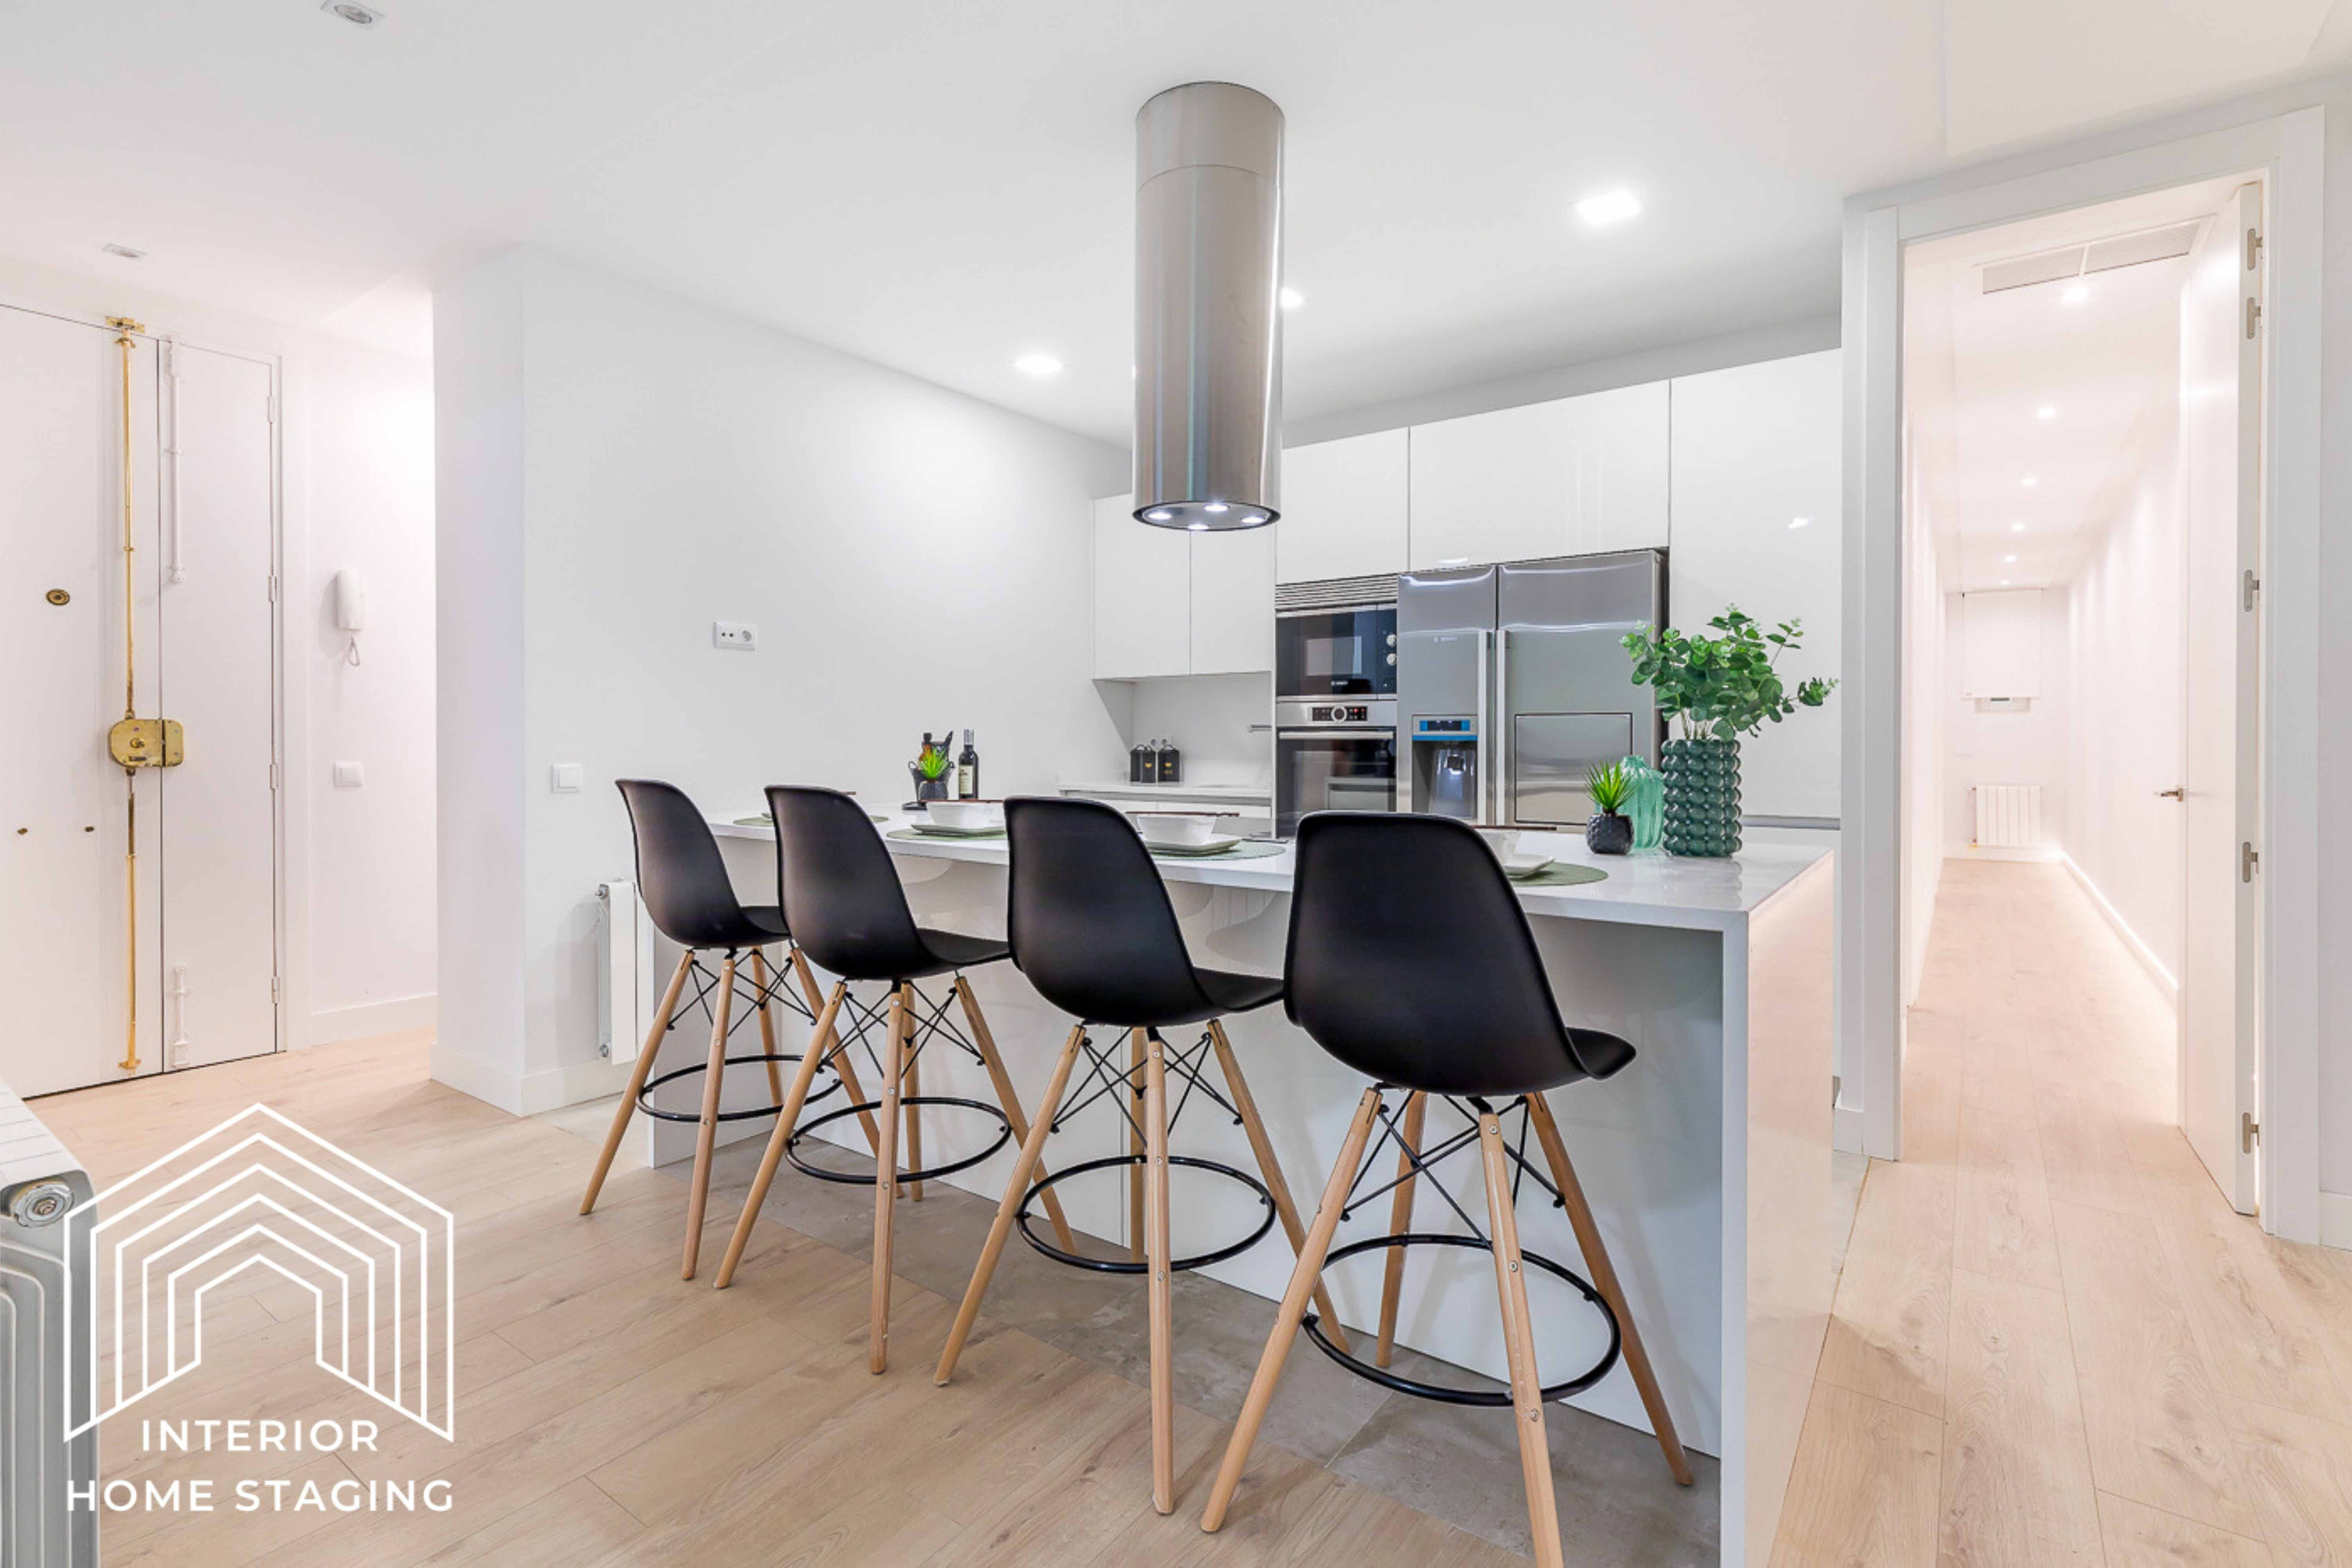 Home Staging Barrio Salamanca 1b